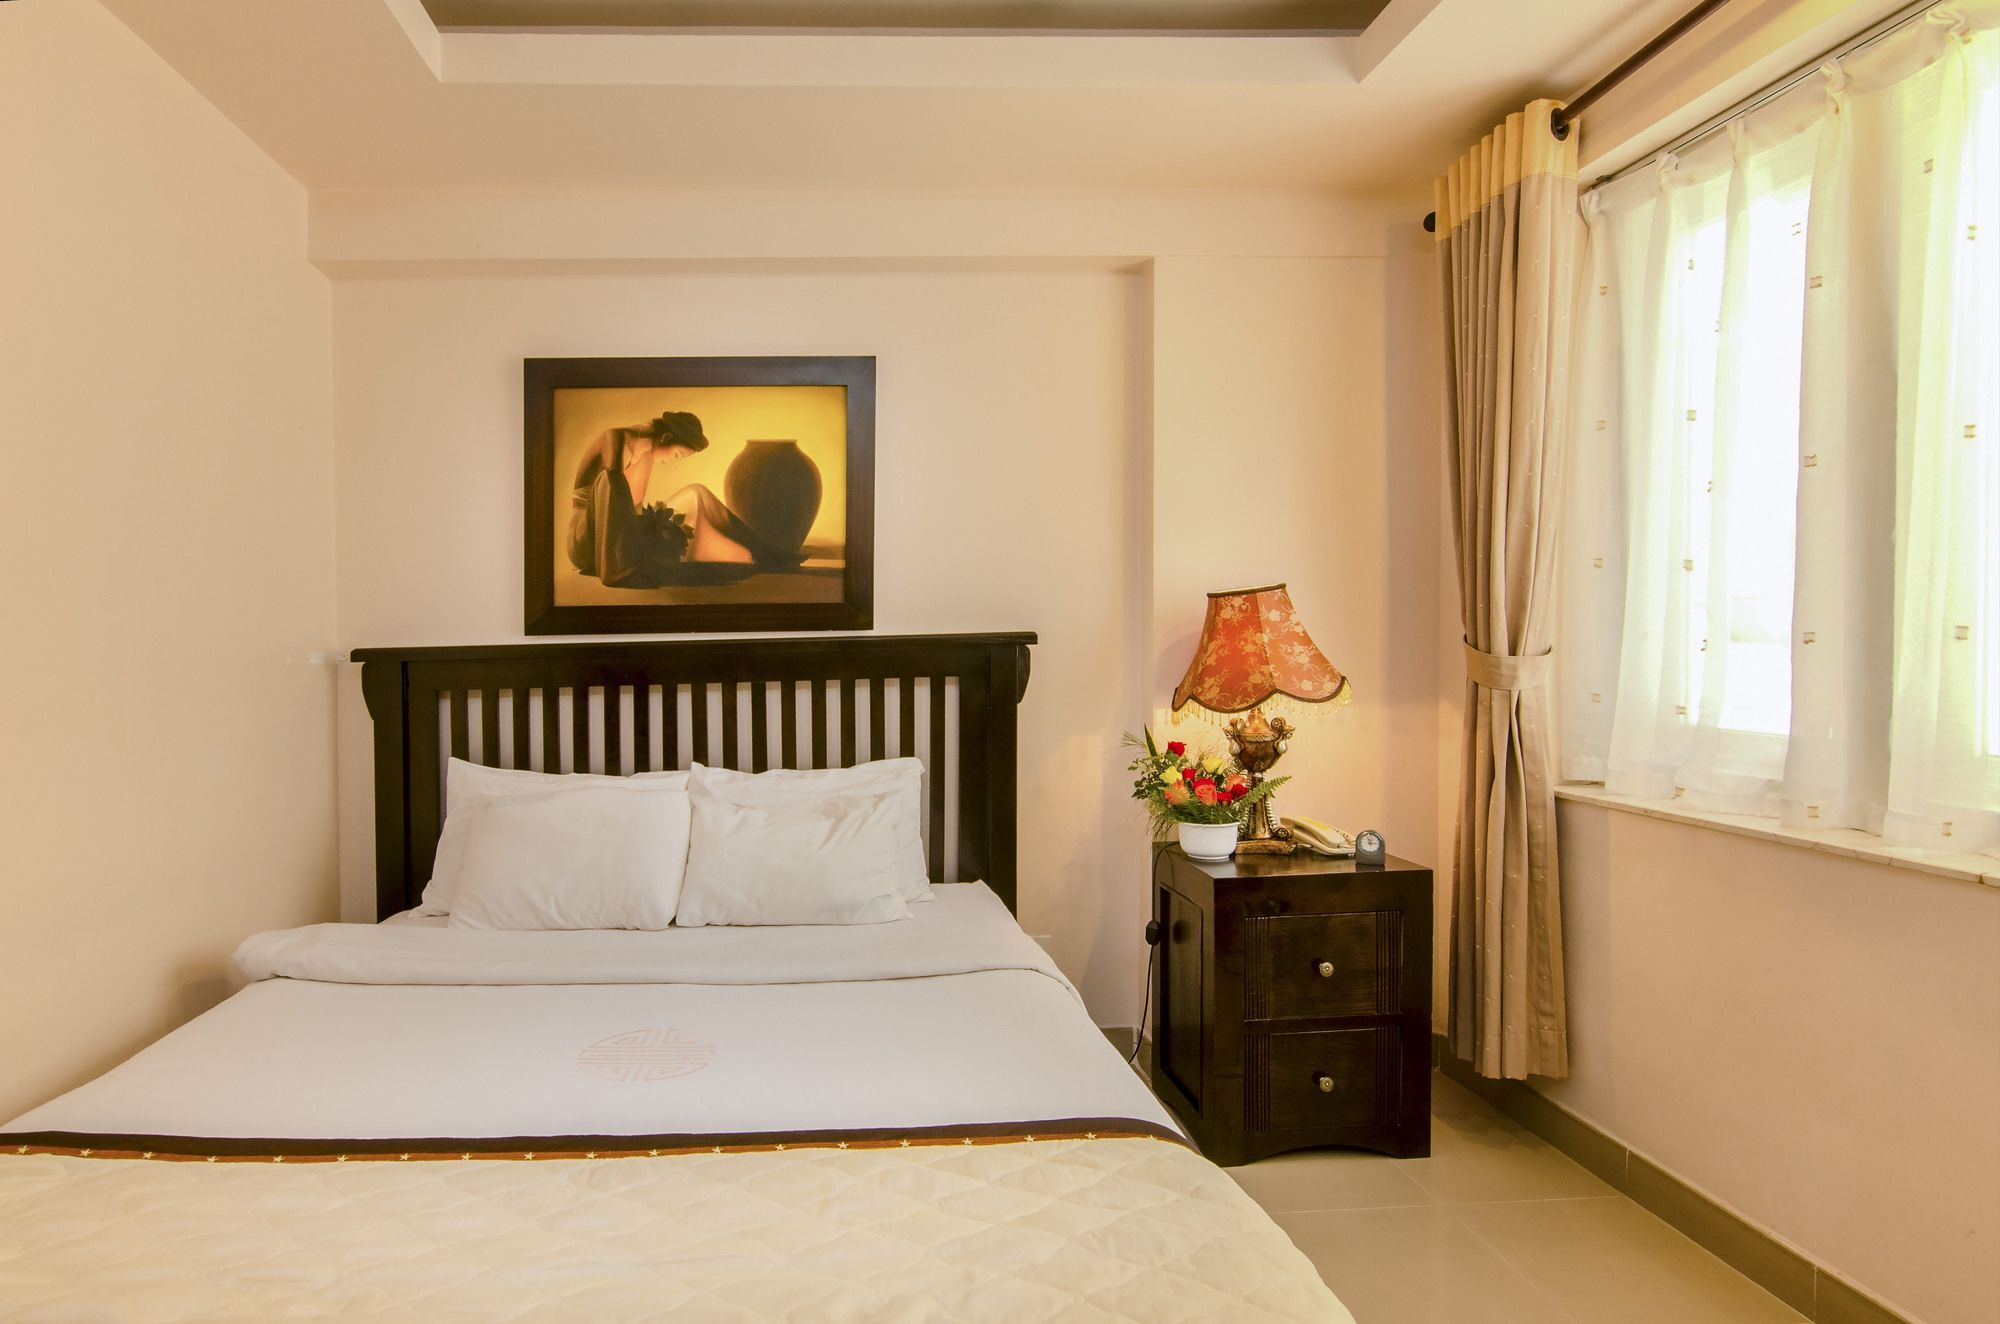 Gallery image of Vien Dong Hotel Phu My Hung